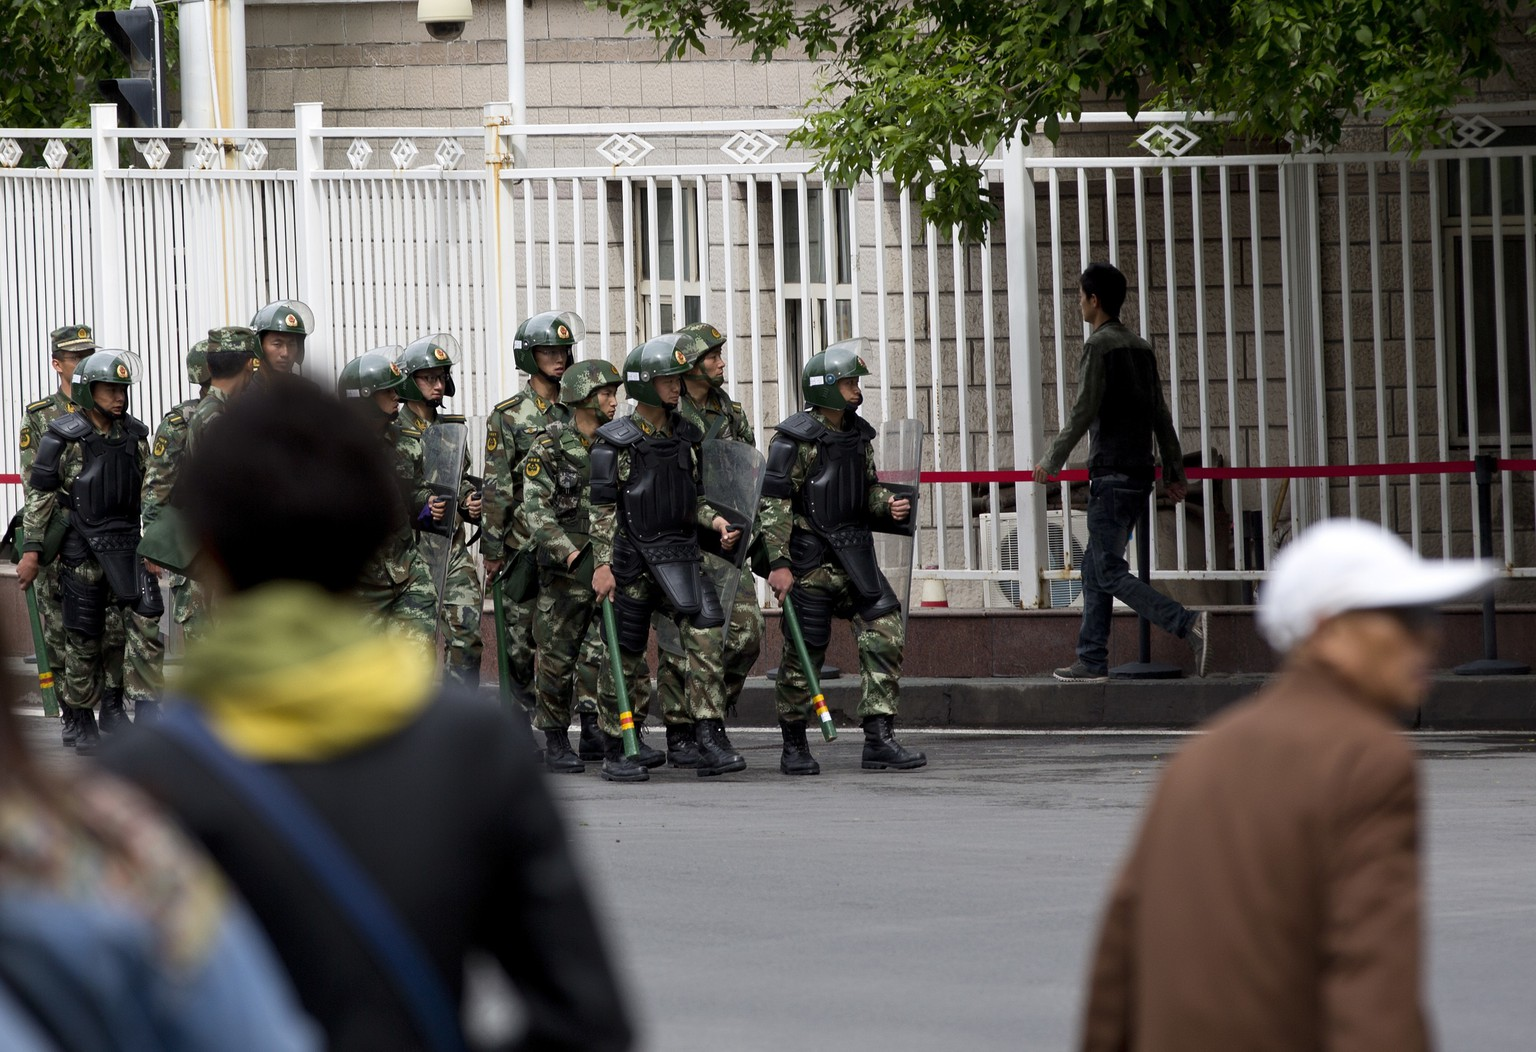 In this May 23, 2014 photo, armed paramilitary policemen patrol on a street in Urumqi, northwest China's Xinjiang Uygur Autonomous Region. So far this month, police in China's restive western region of Xinjiang have broken up 23 terror and religious extremism groups and caught over 200 suspects, state media reported Monday, May 26. (AP Photo/Andy Wong) |